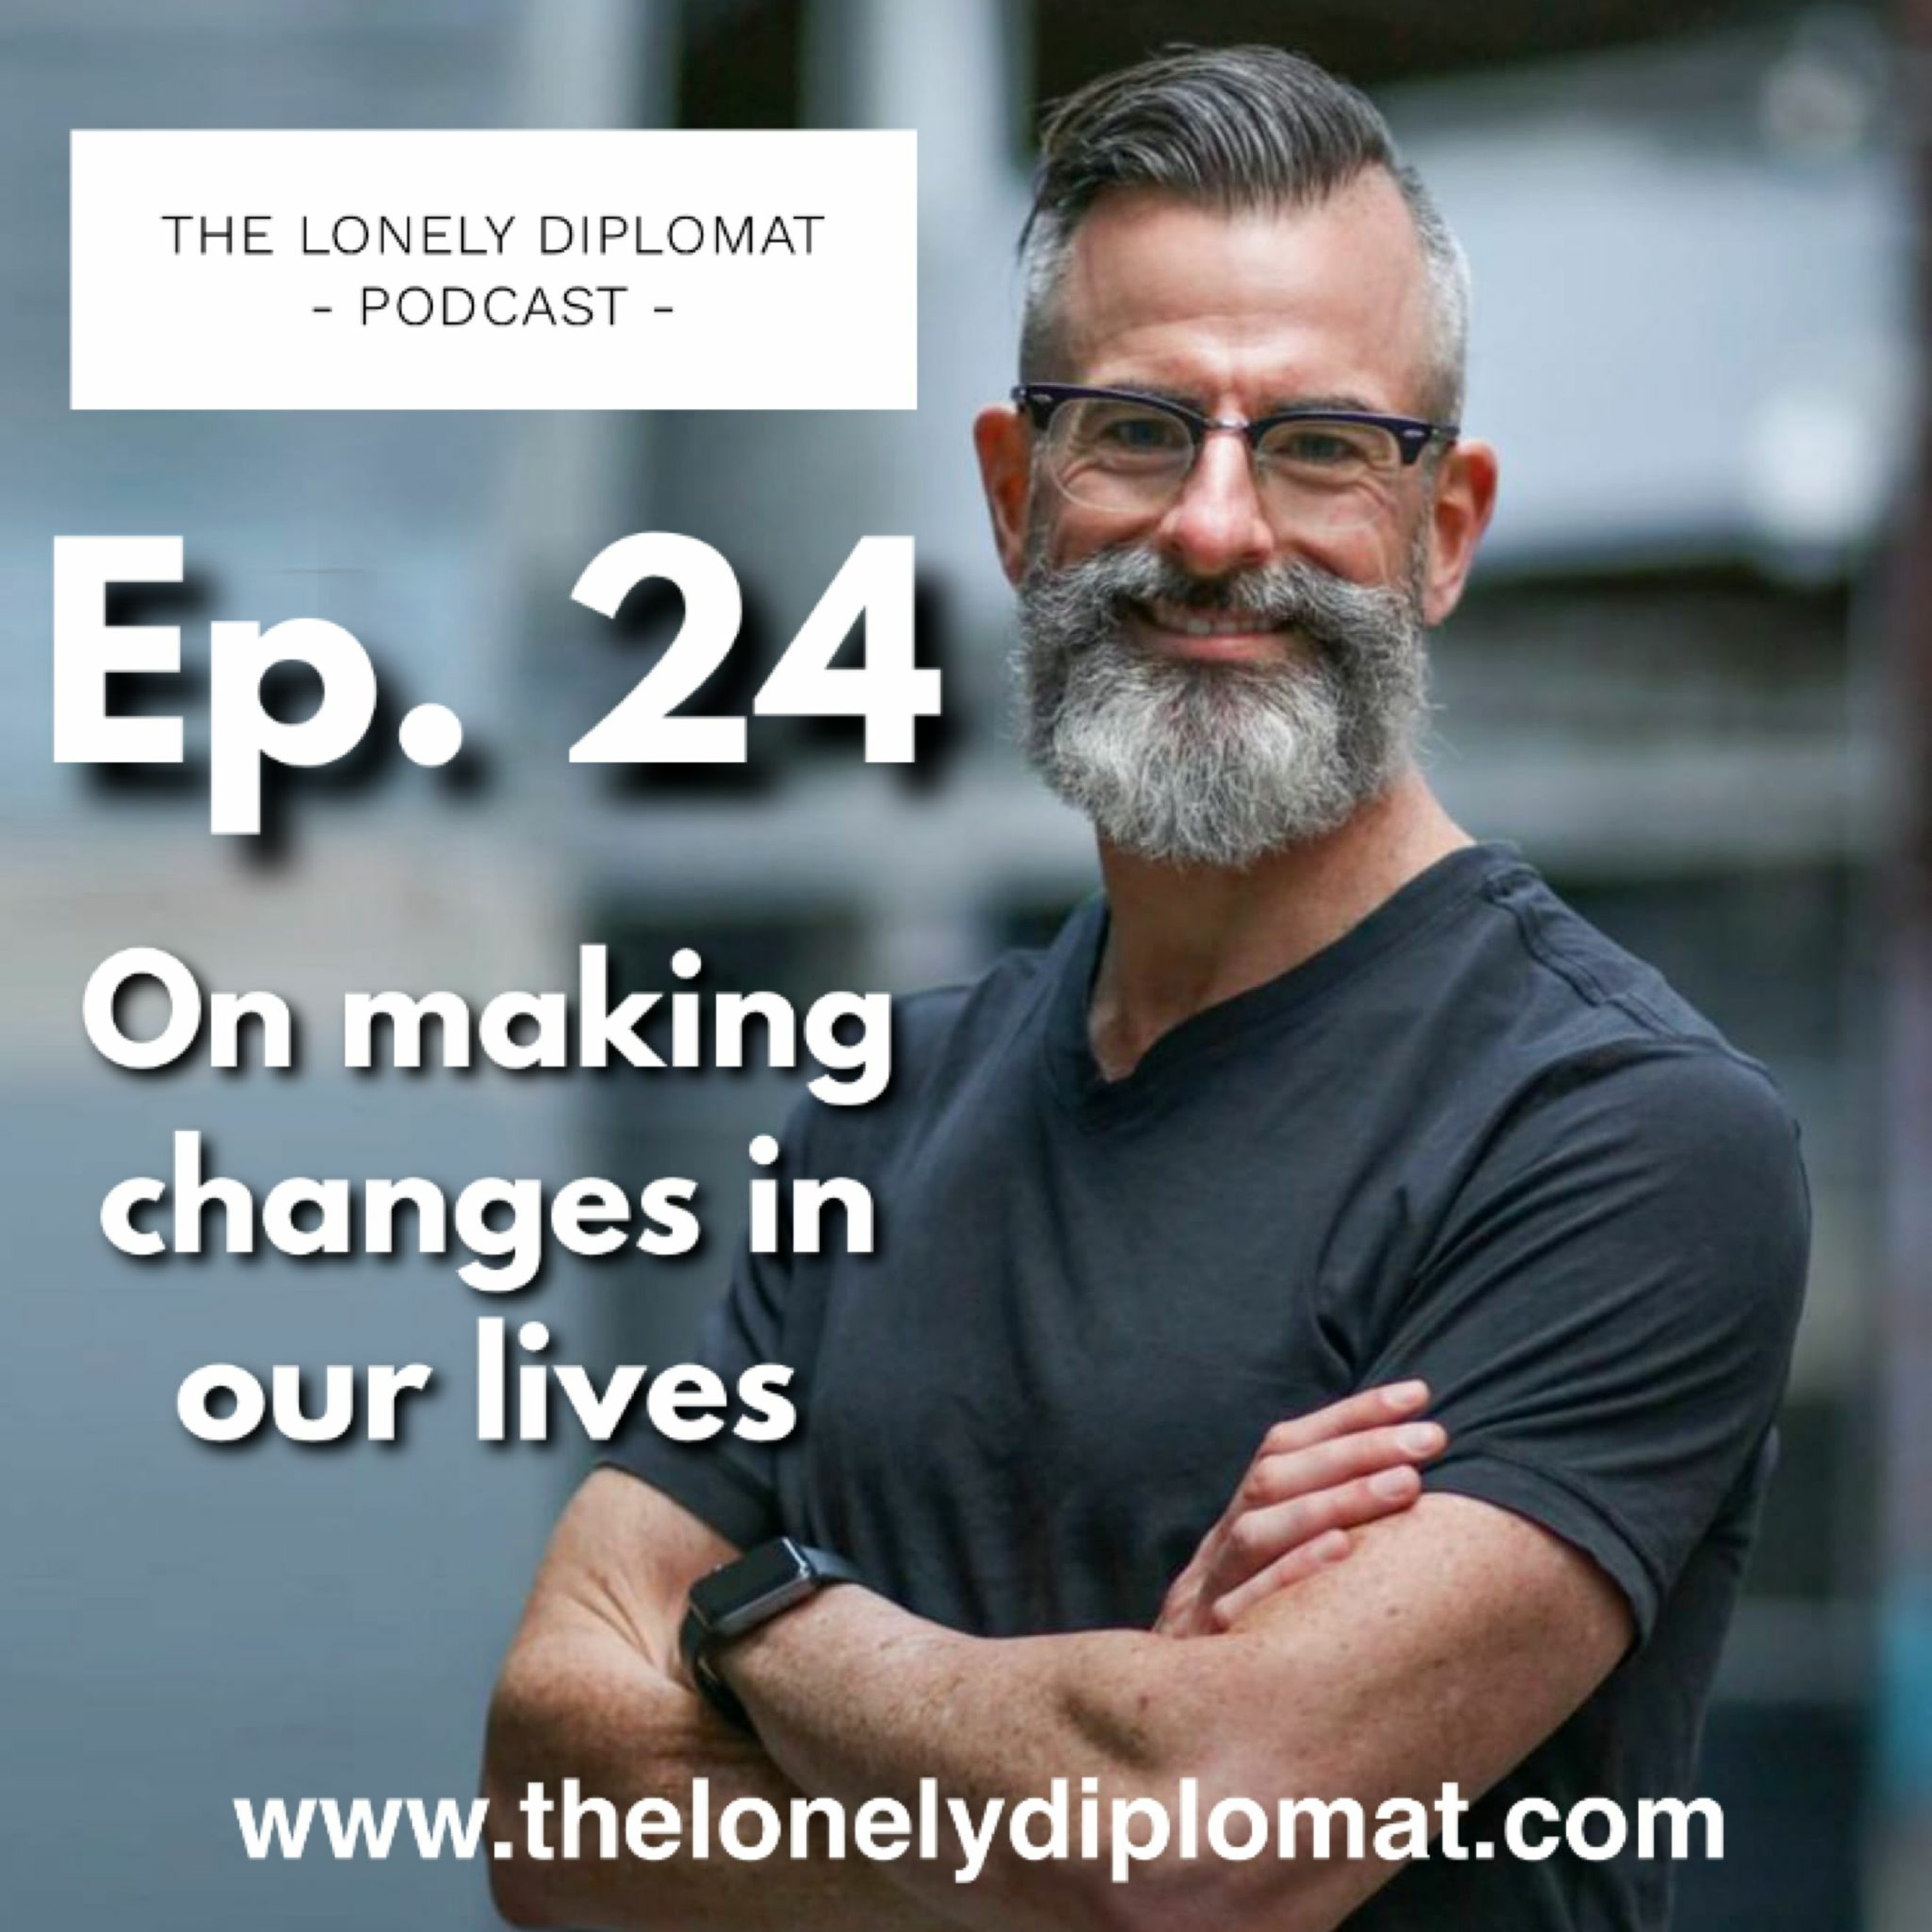 Ep. 24 - On making changes in our lives